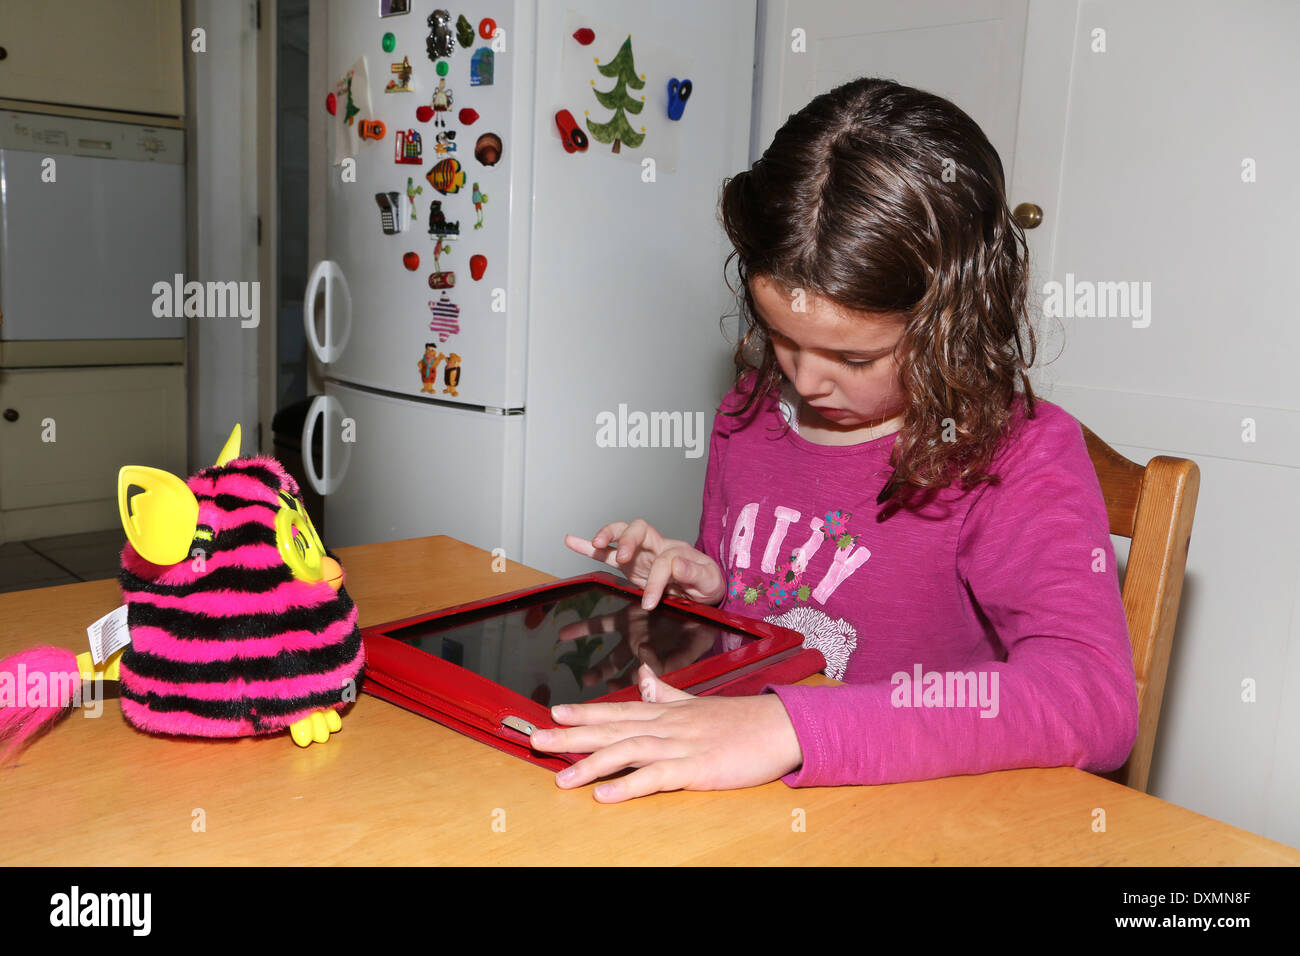 Incredible 8 Year Old Girl Using An Ipad With Furby On The Table Surrey Download Free Architecture Designs Terchretrmadebymaigaardcom